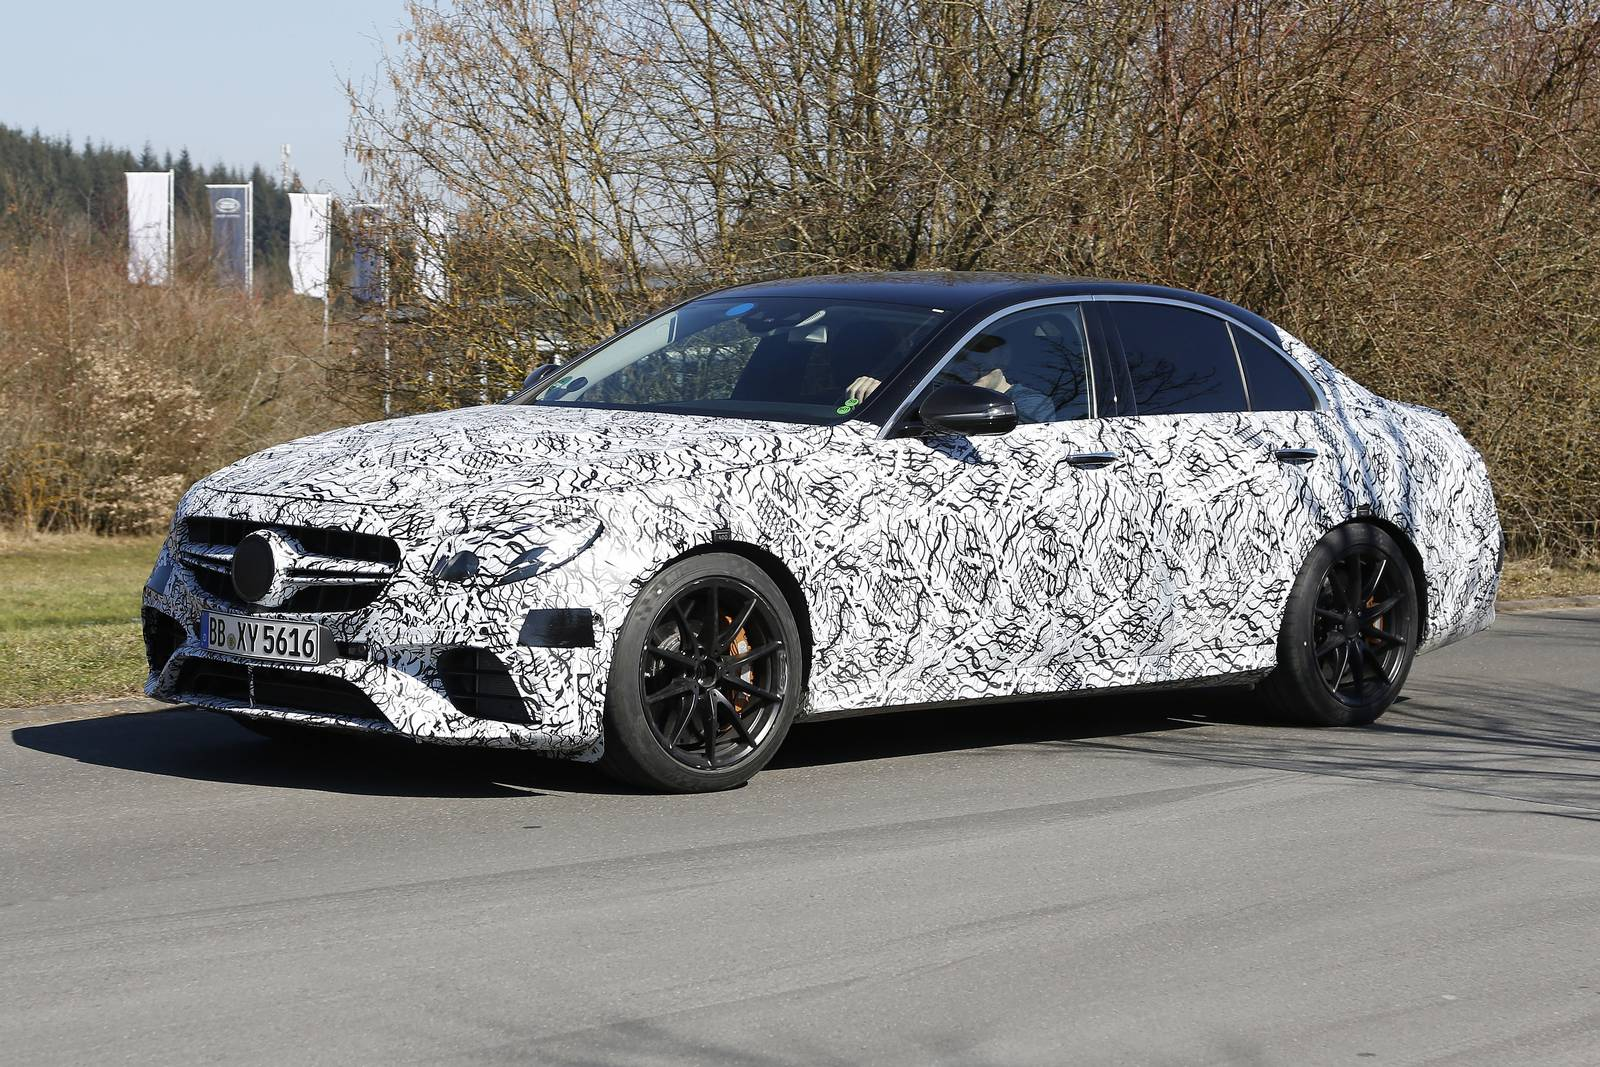 2018 mercedes benz e63 amg. plain 2018 home supercar news mercedesbenz 2018 mercedesamg e63 estate and sedan new  spy shots  and mercedes benz e63 amg r